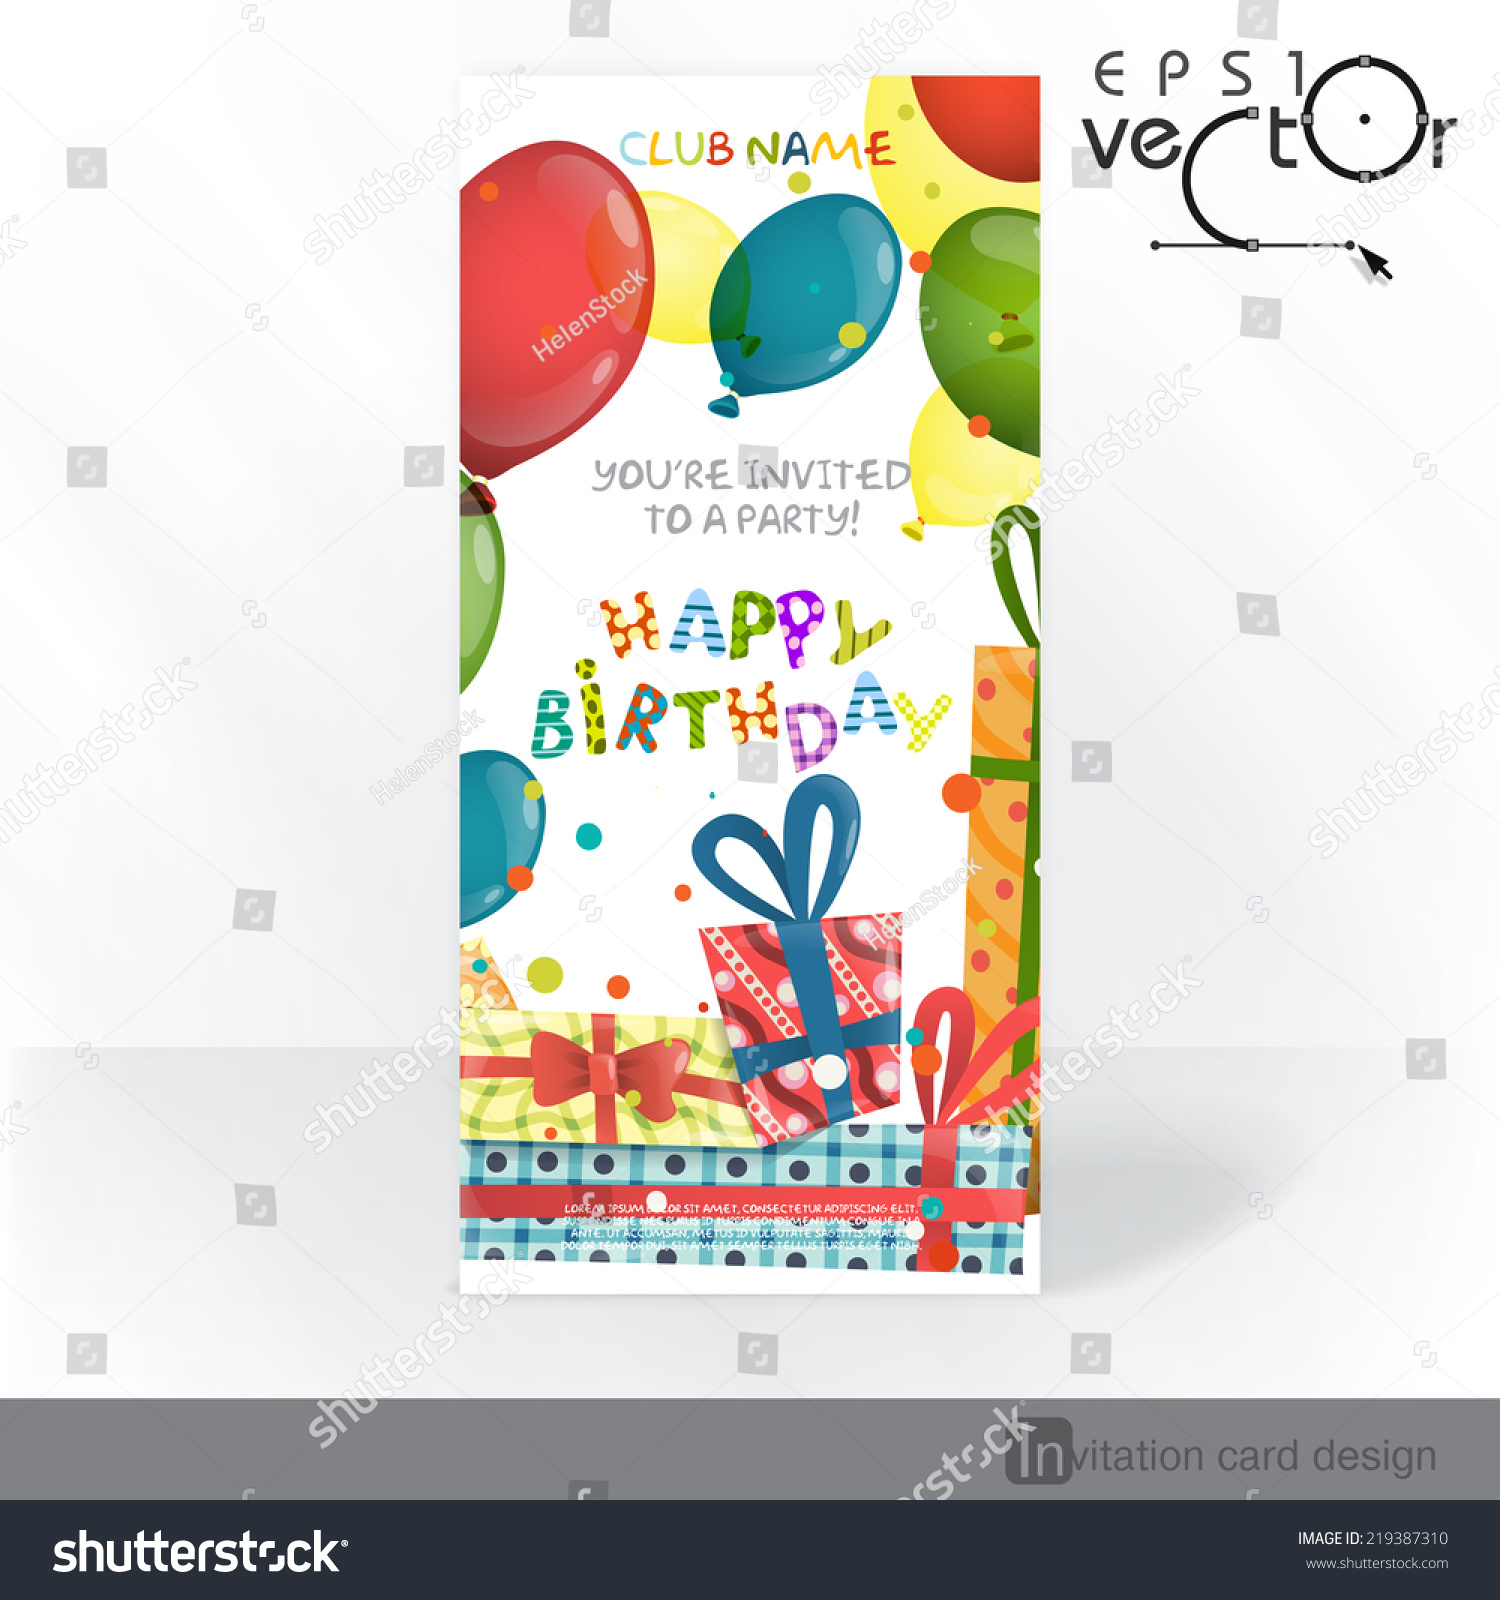 Colorful birthday background party invitation card stock vector colorful birthday background party invitation card stock vector 219387310 shutterstock stopboris Images